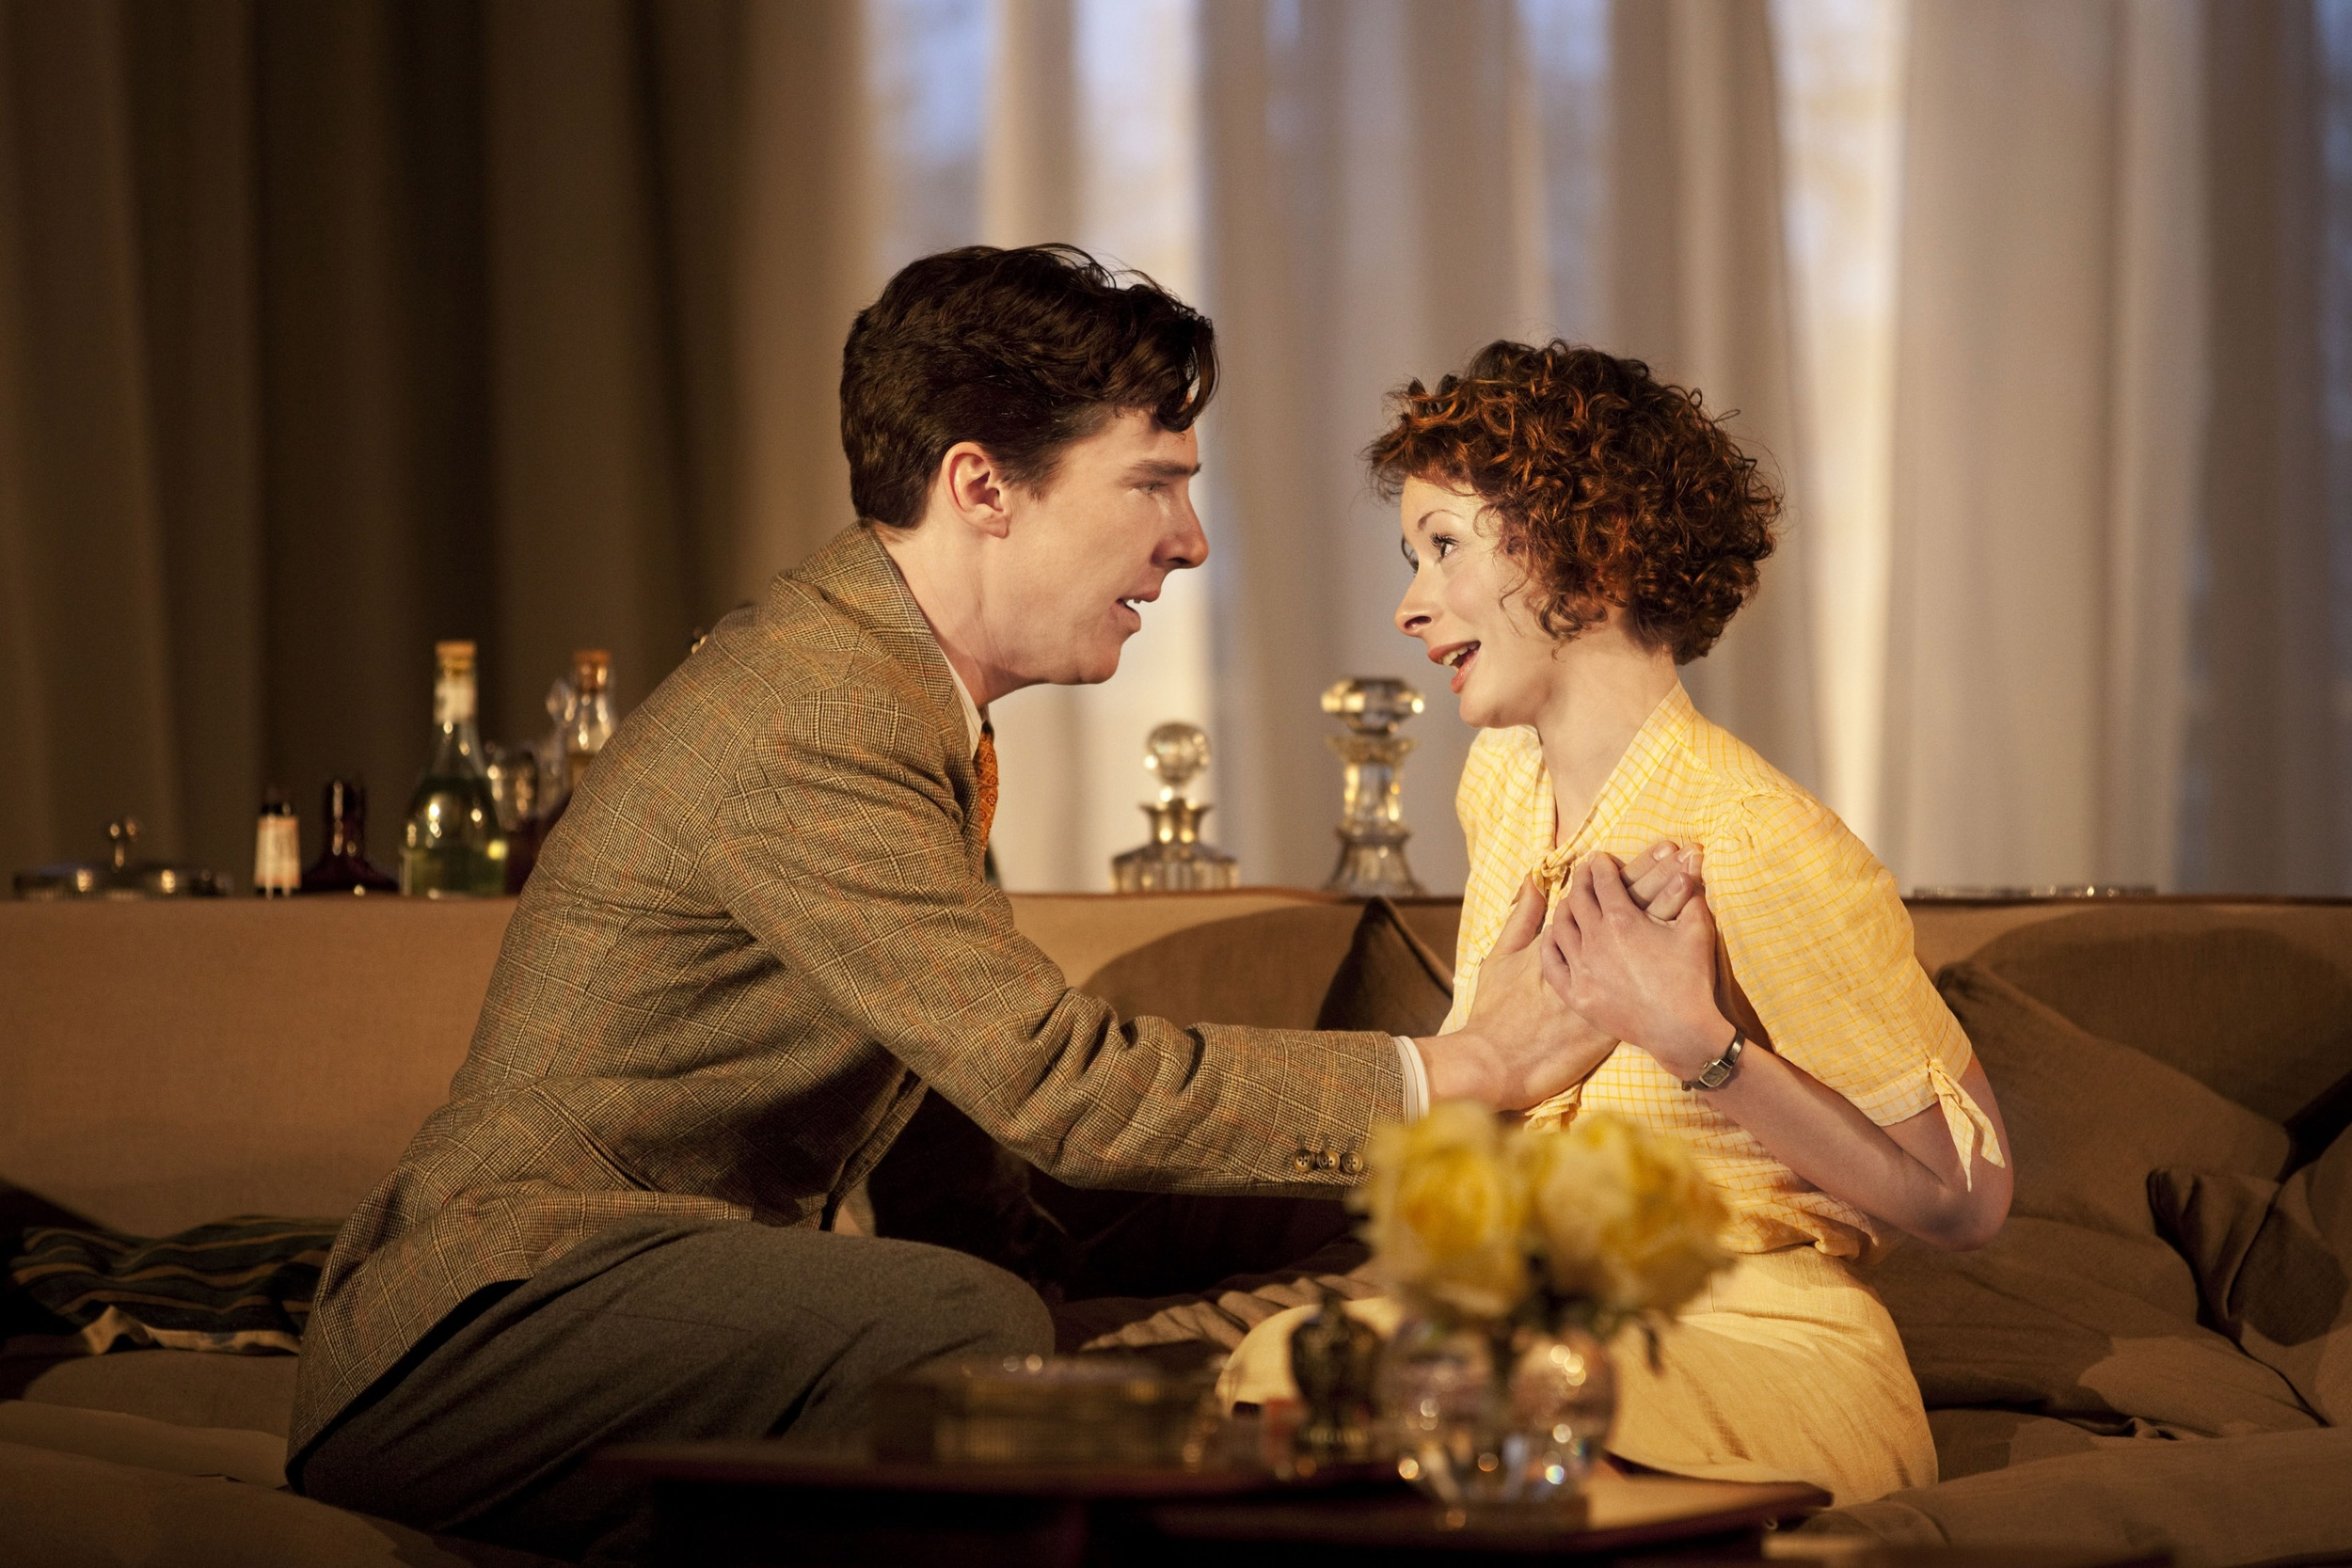 Benedict Cumberbatch and Faye Castelow kindle an illusory love